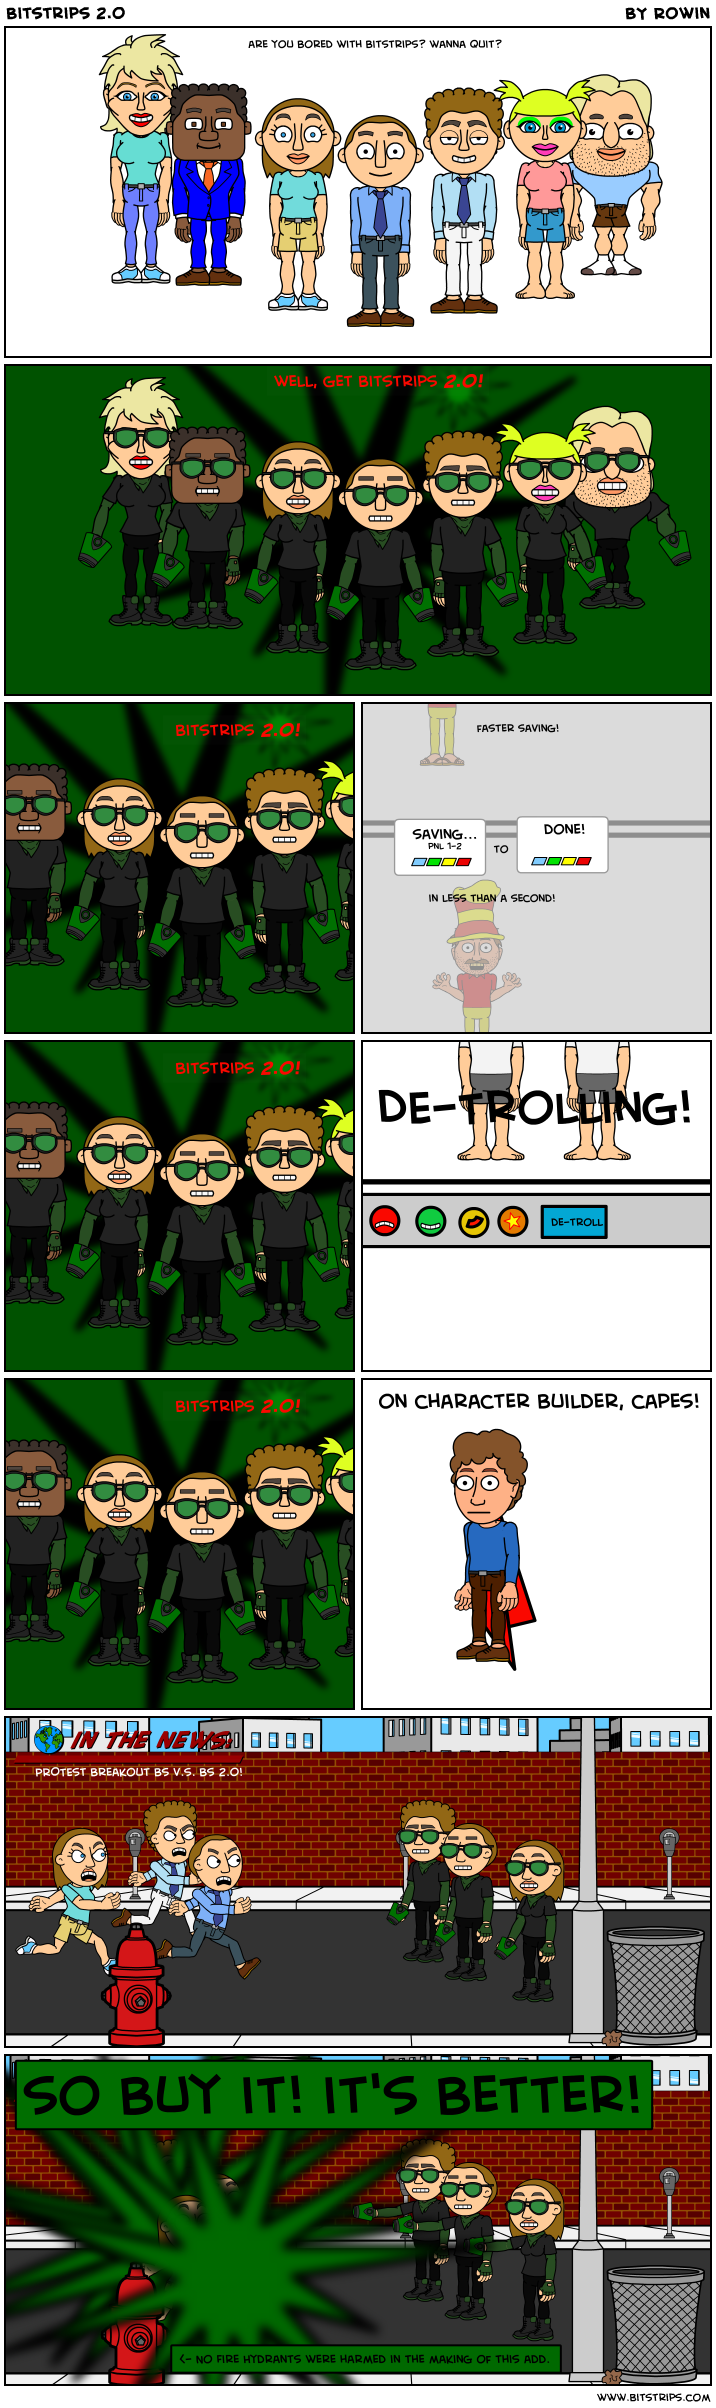 Bitstrips 2.0